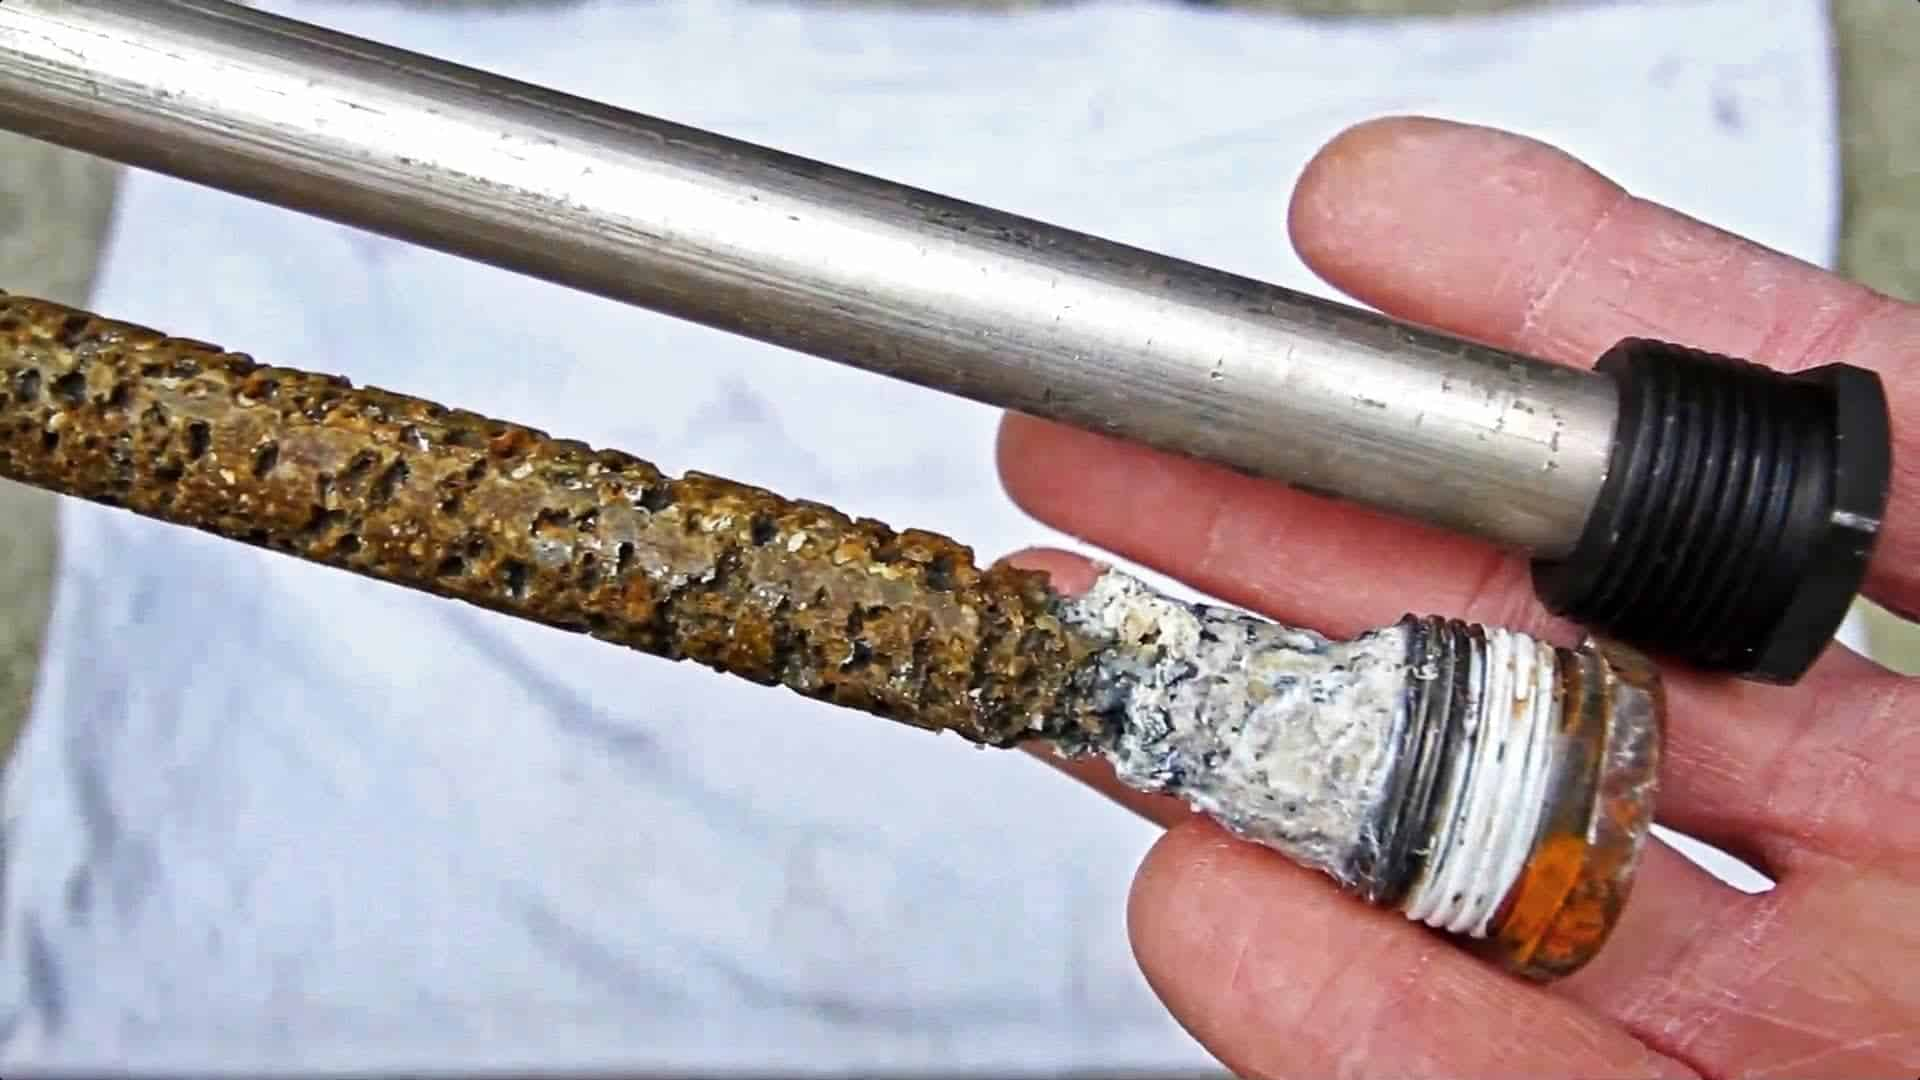 Rv Suburban Water Heater Anode Rod Fail Thervgeeks